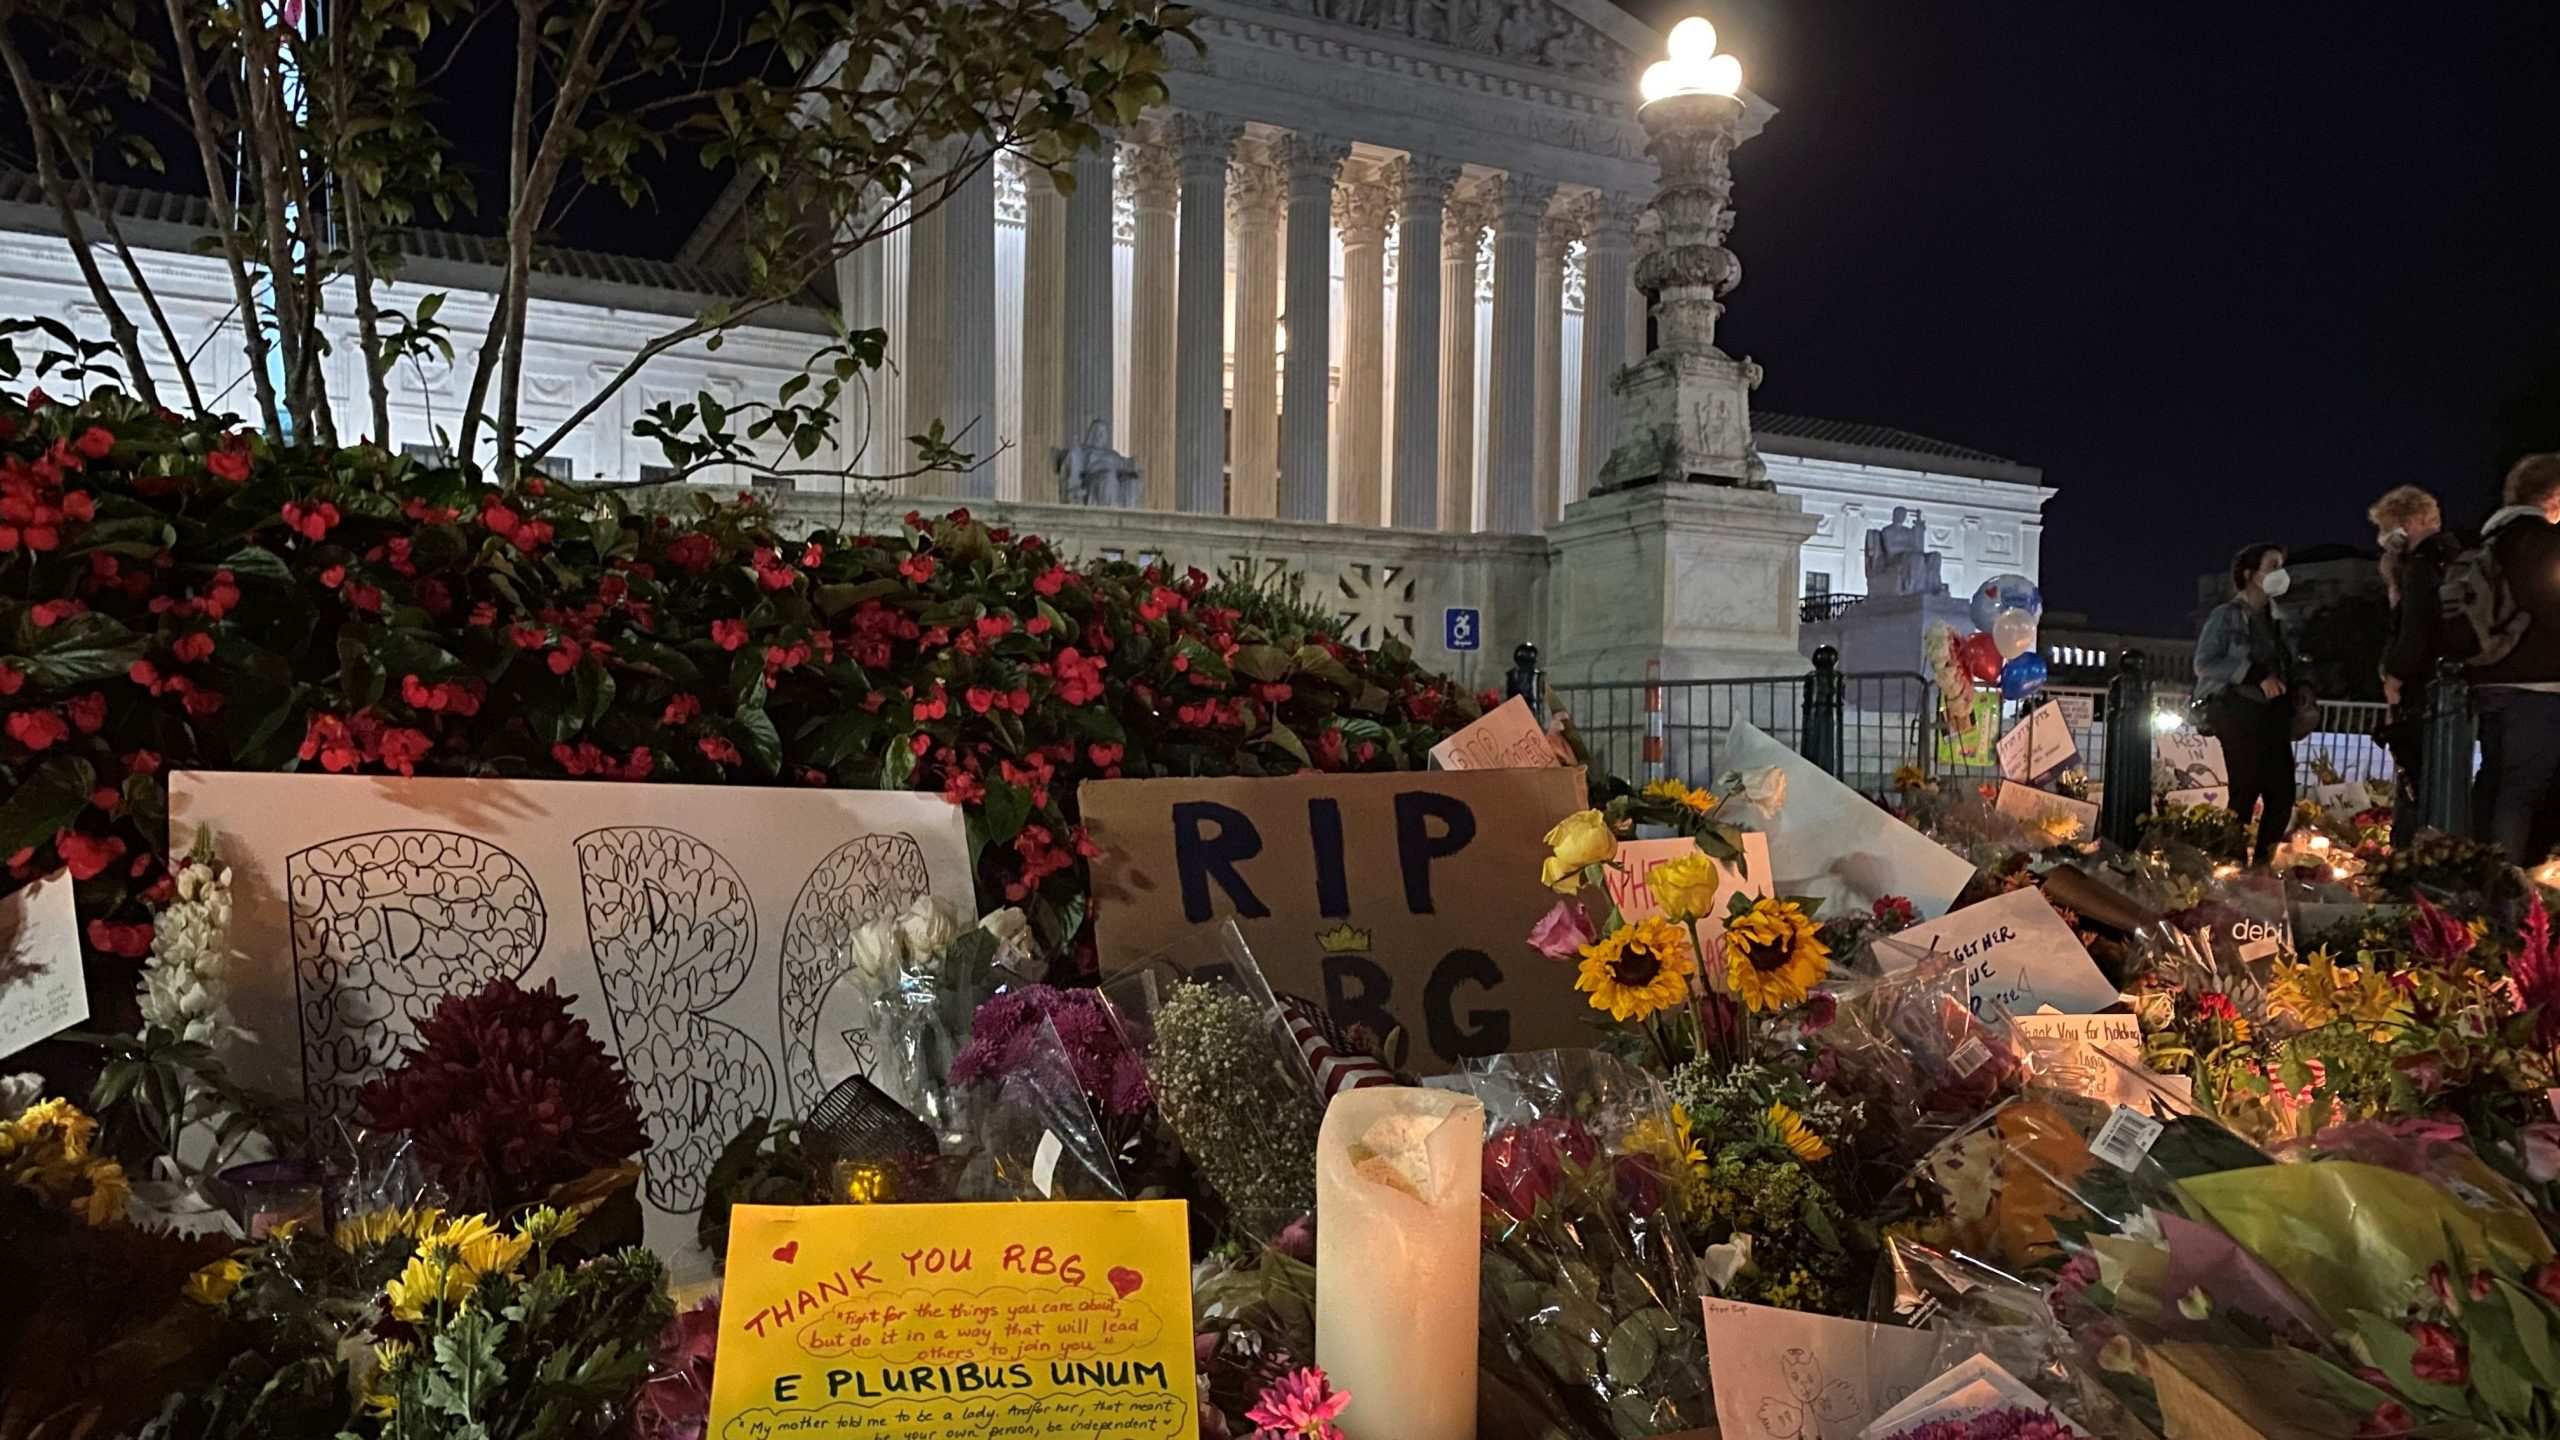 Photo of flowers and signs in front of the US Supreme Court.